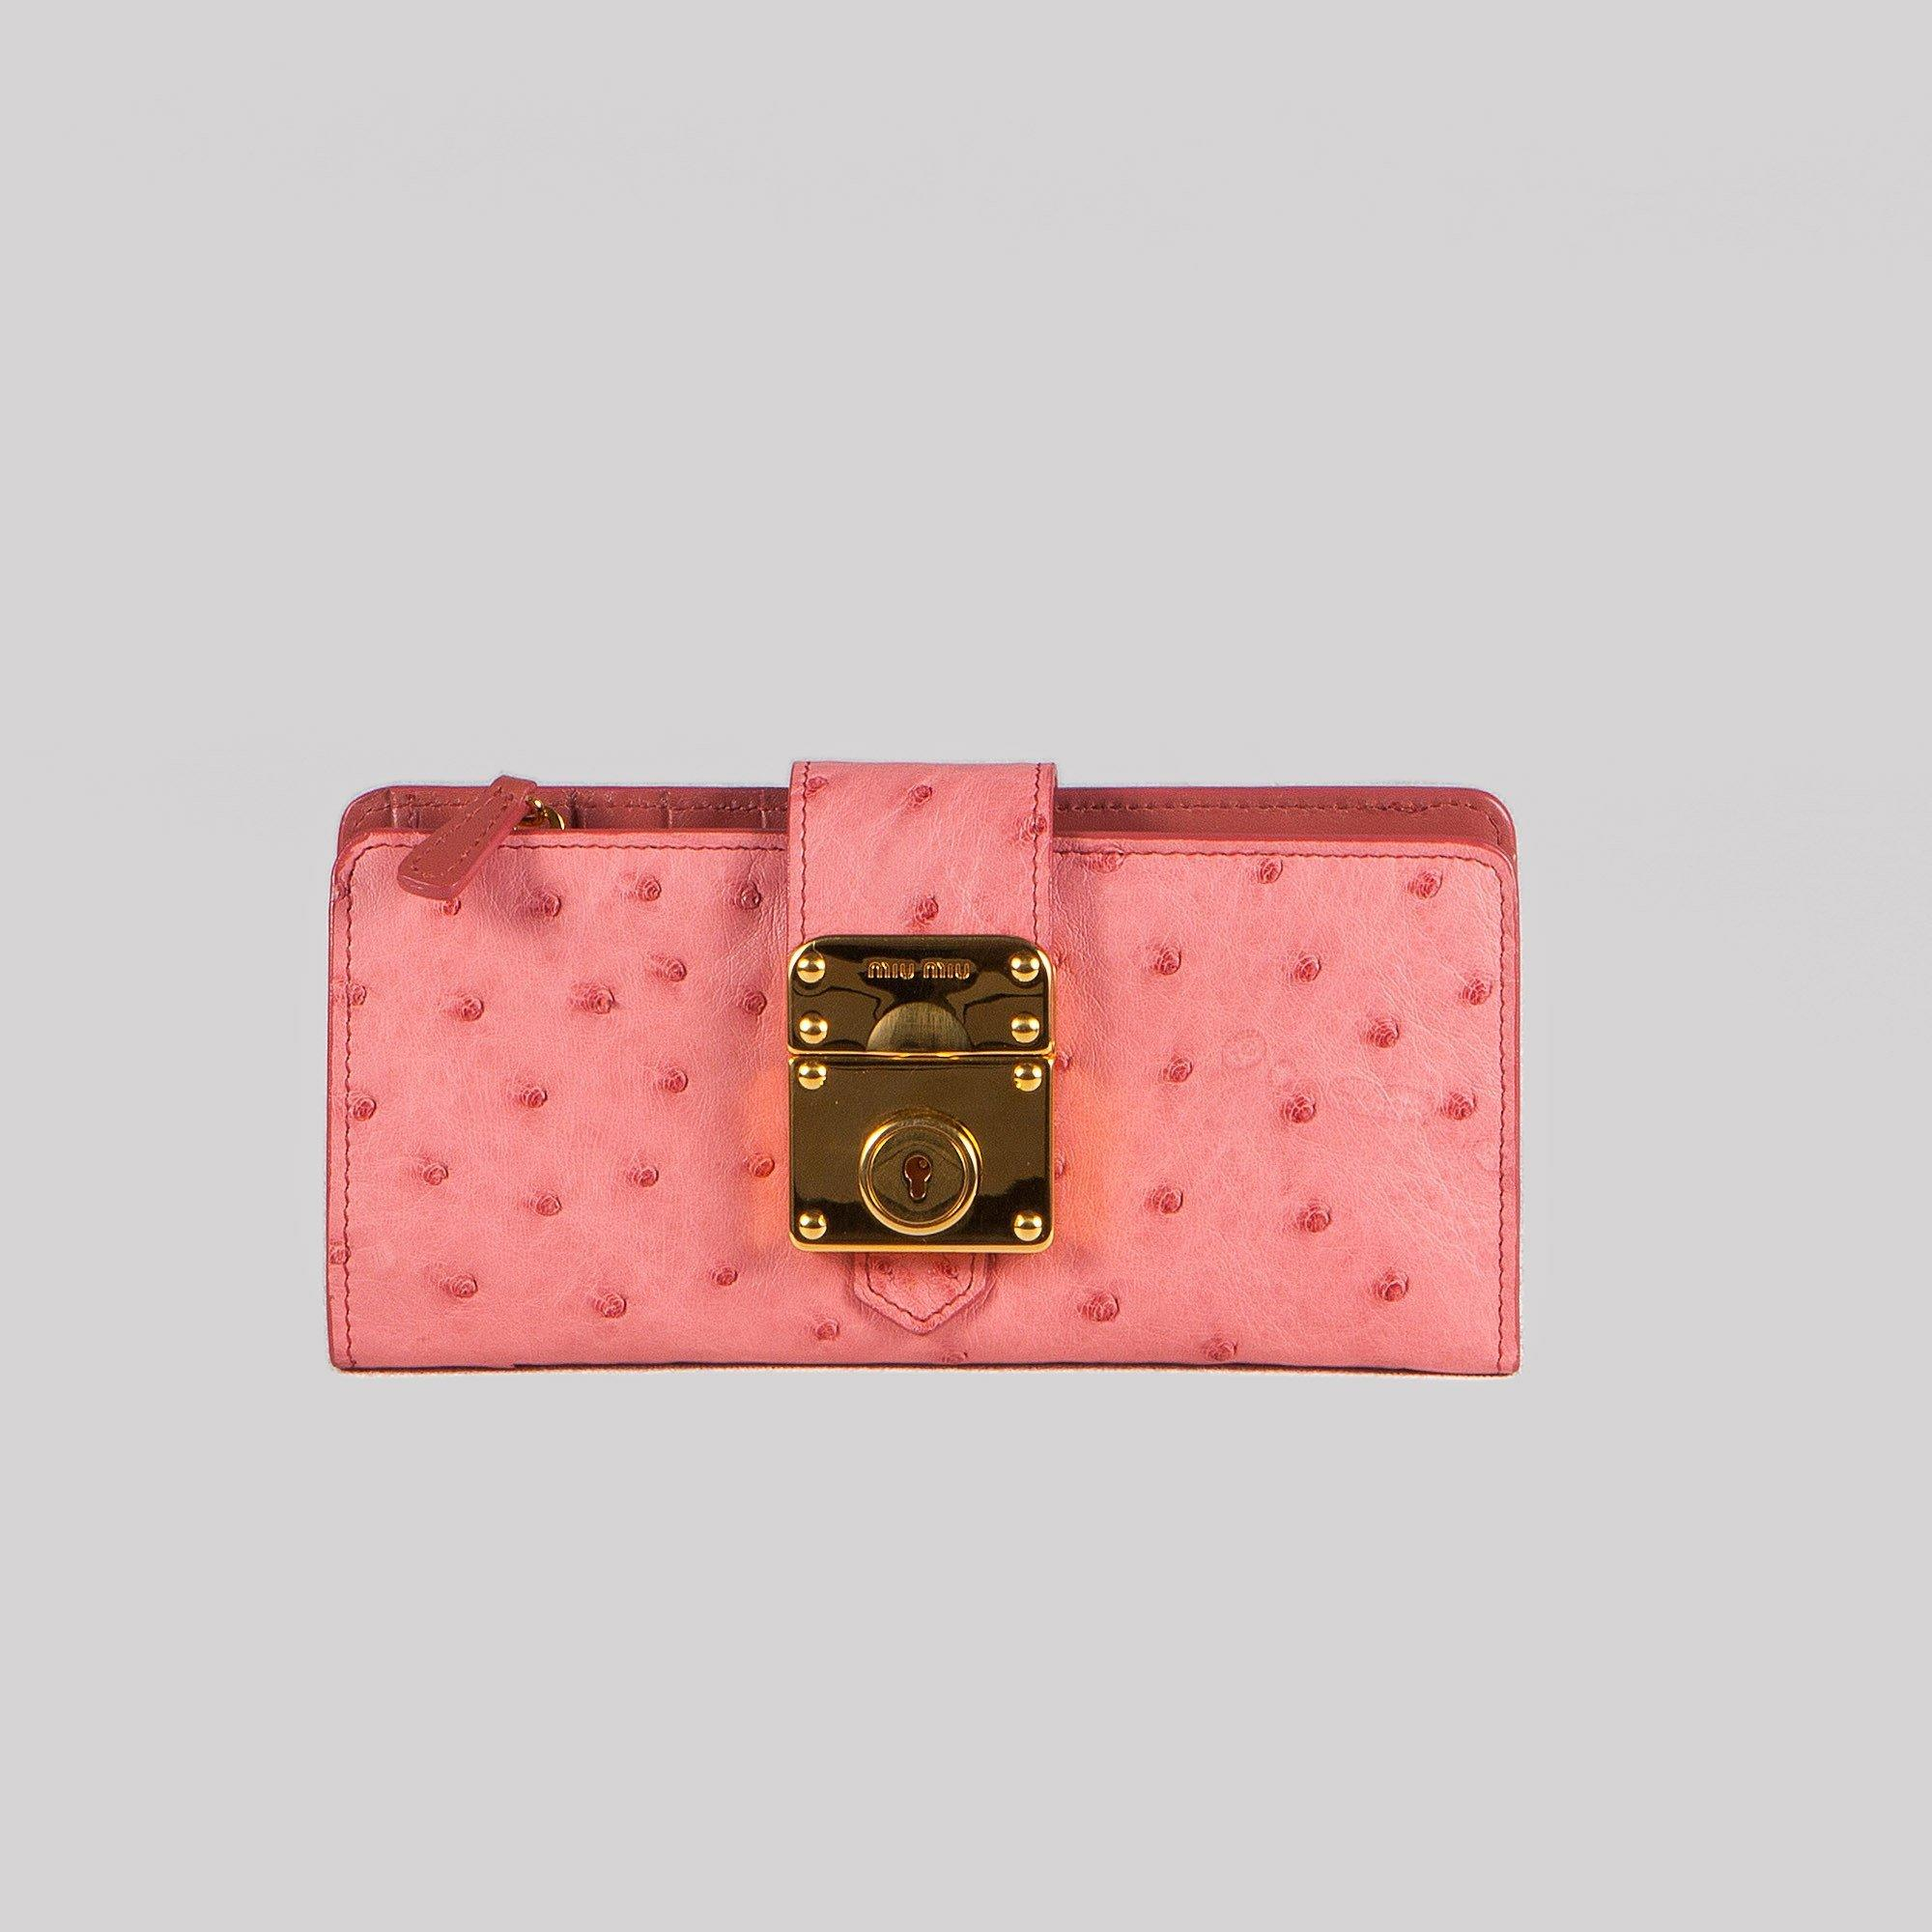 Miu Miu Ostrich Long Wallet